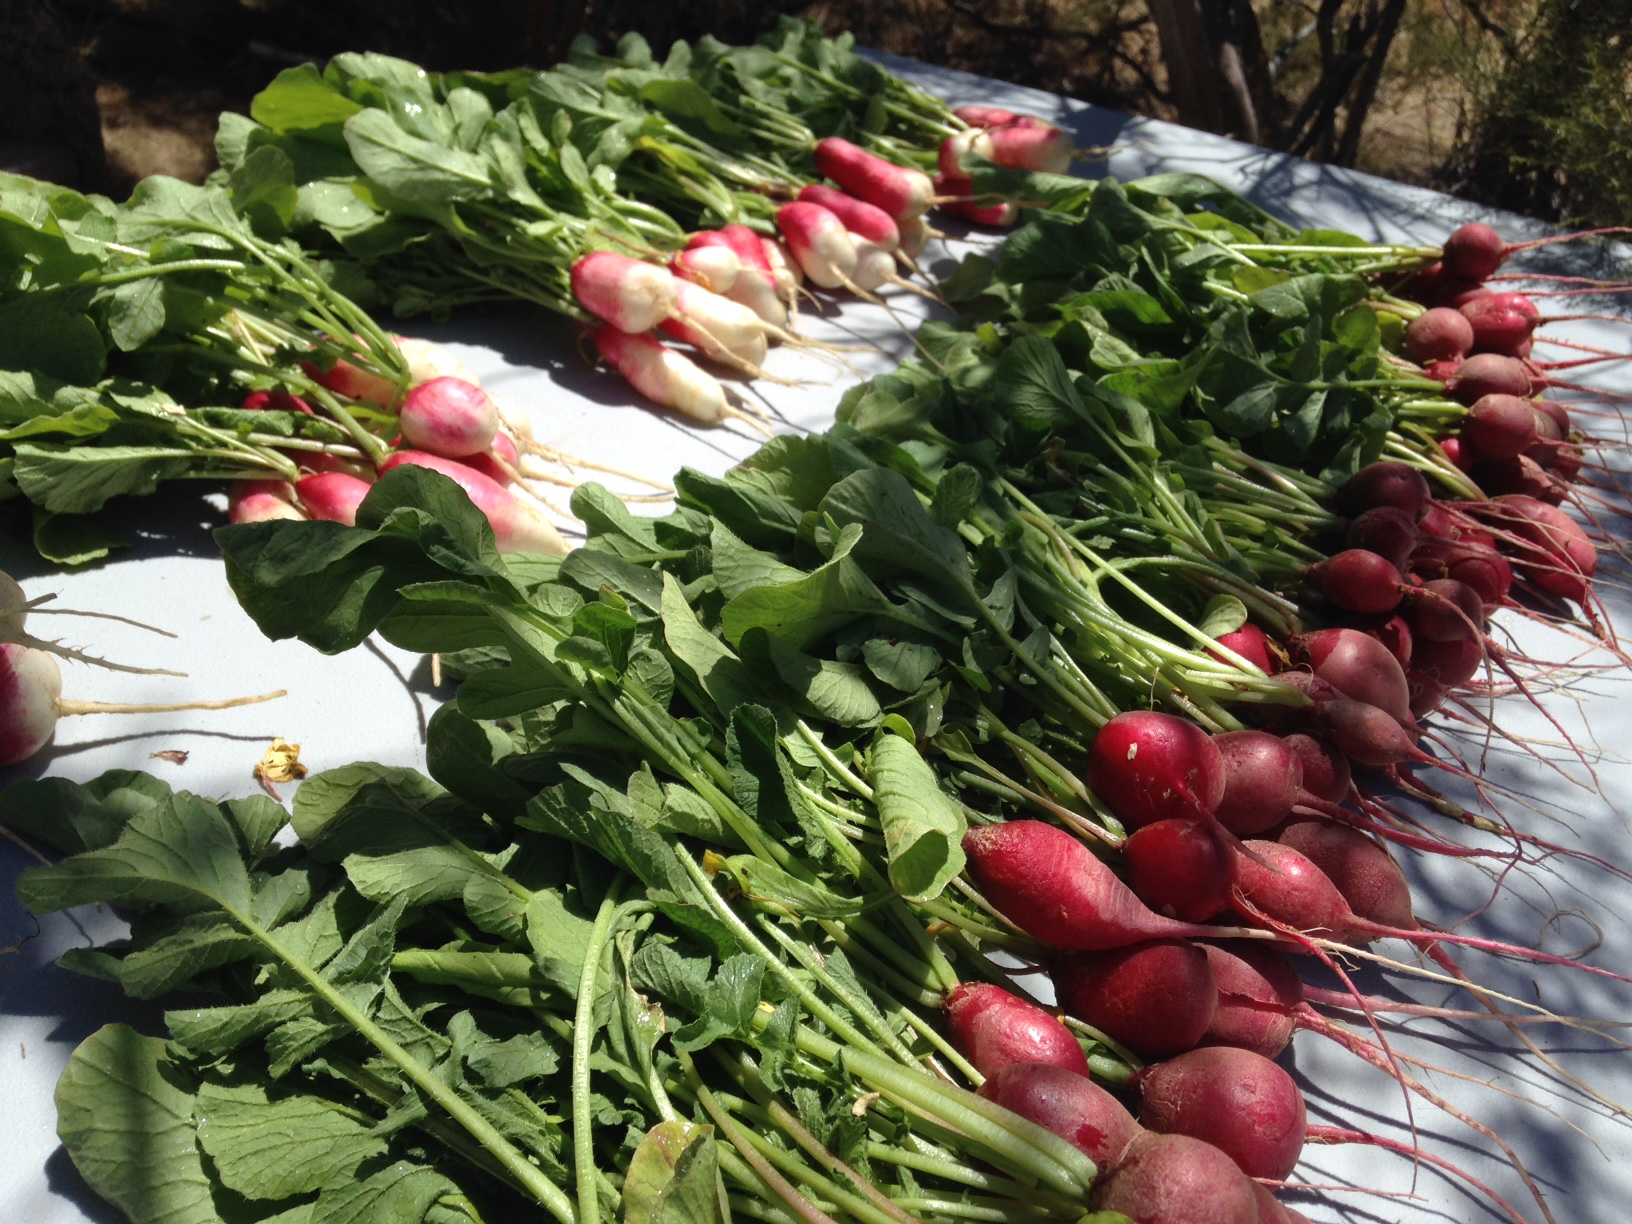 French Breakfast and Cherry Belle Radishes drying on the washing table.